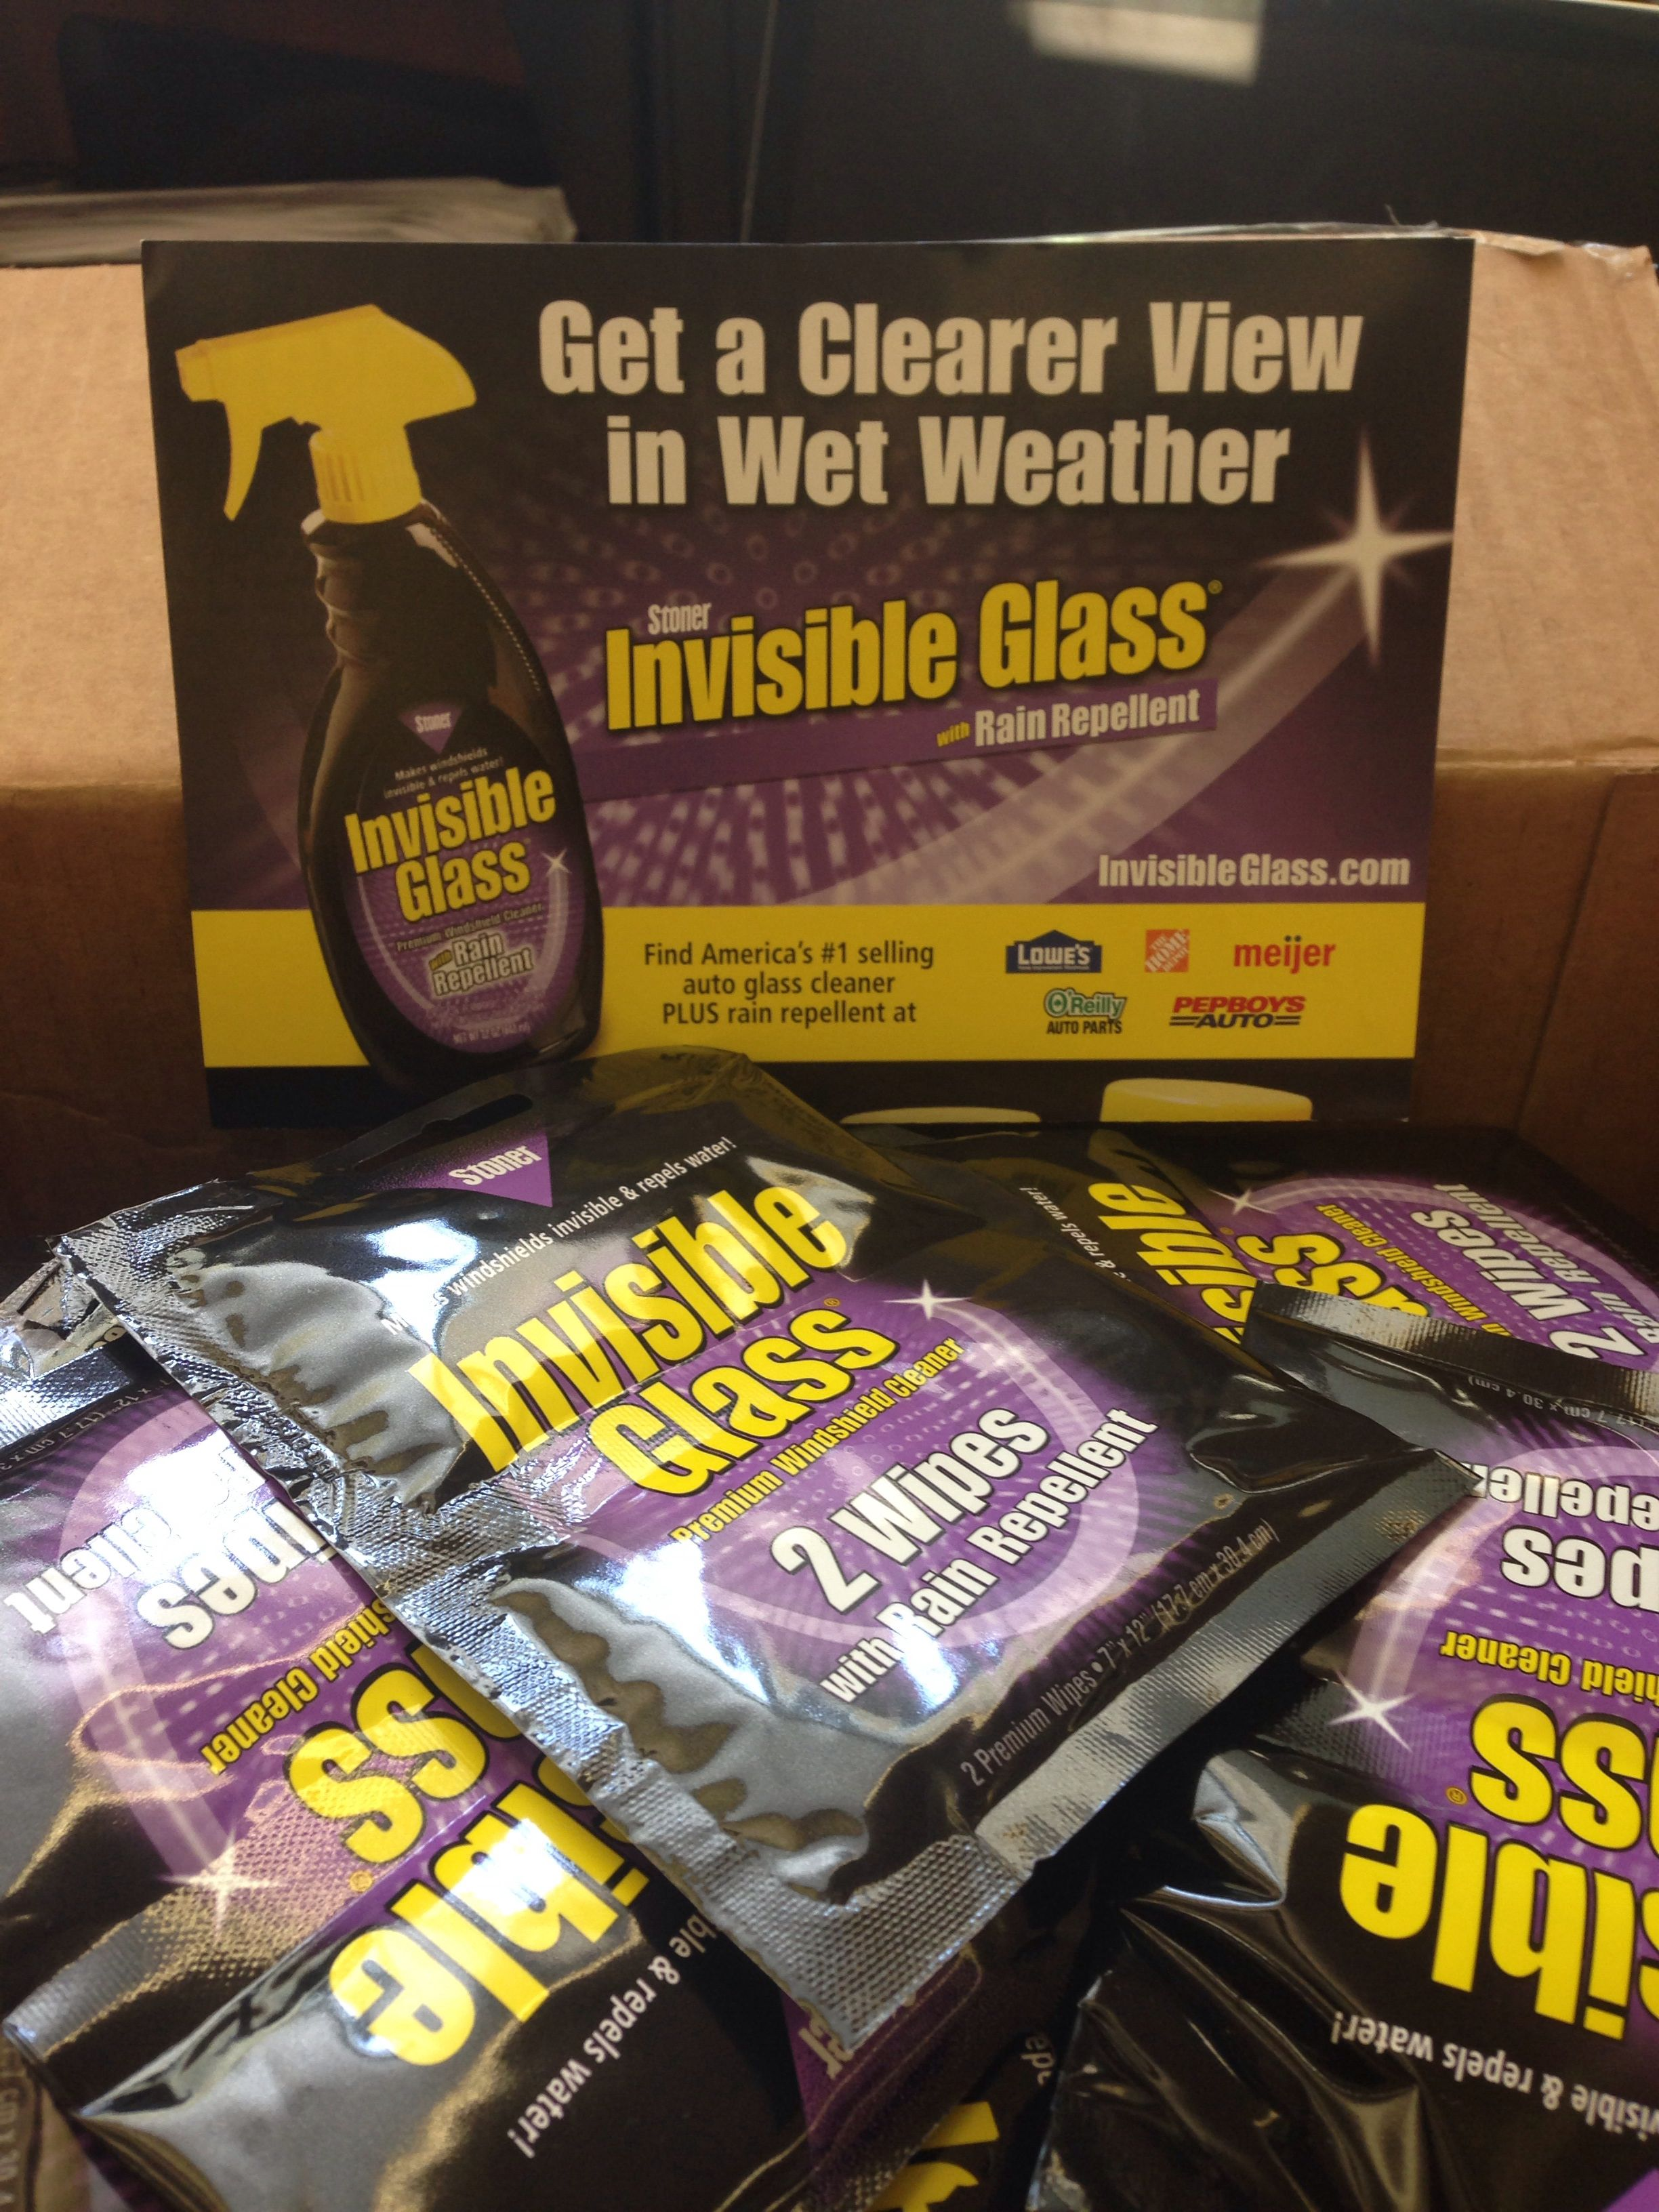 Glass Wipes And Info Cards For Our Goodie Bags Stonerinc Invisibleglass Cleaner Rain Repellant Thankyou Donation Carshow